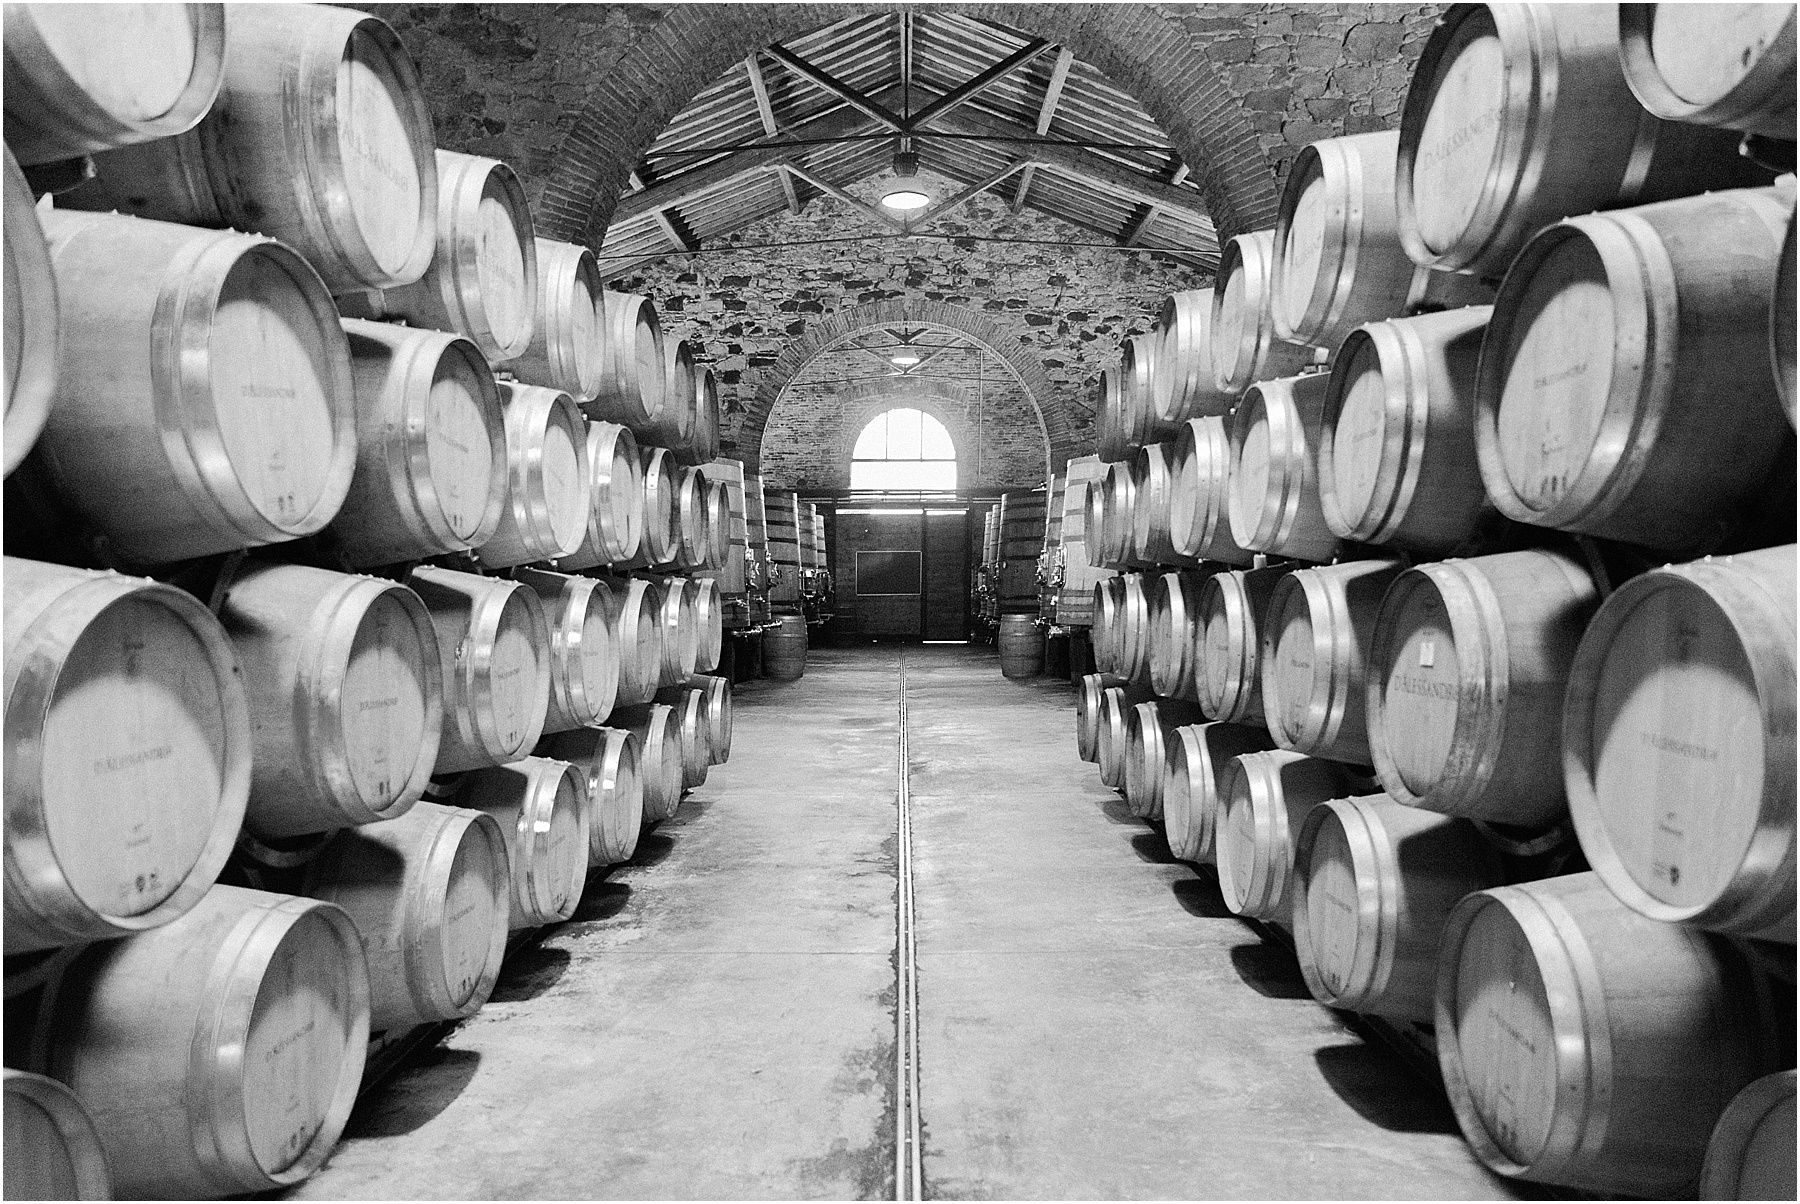 wine cellar black and white at cortona winery vineyard tenimenti d'alessandro osteria borgo syrah